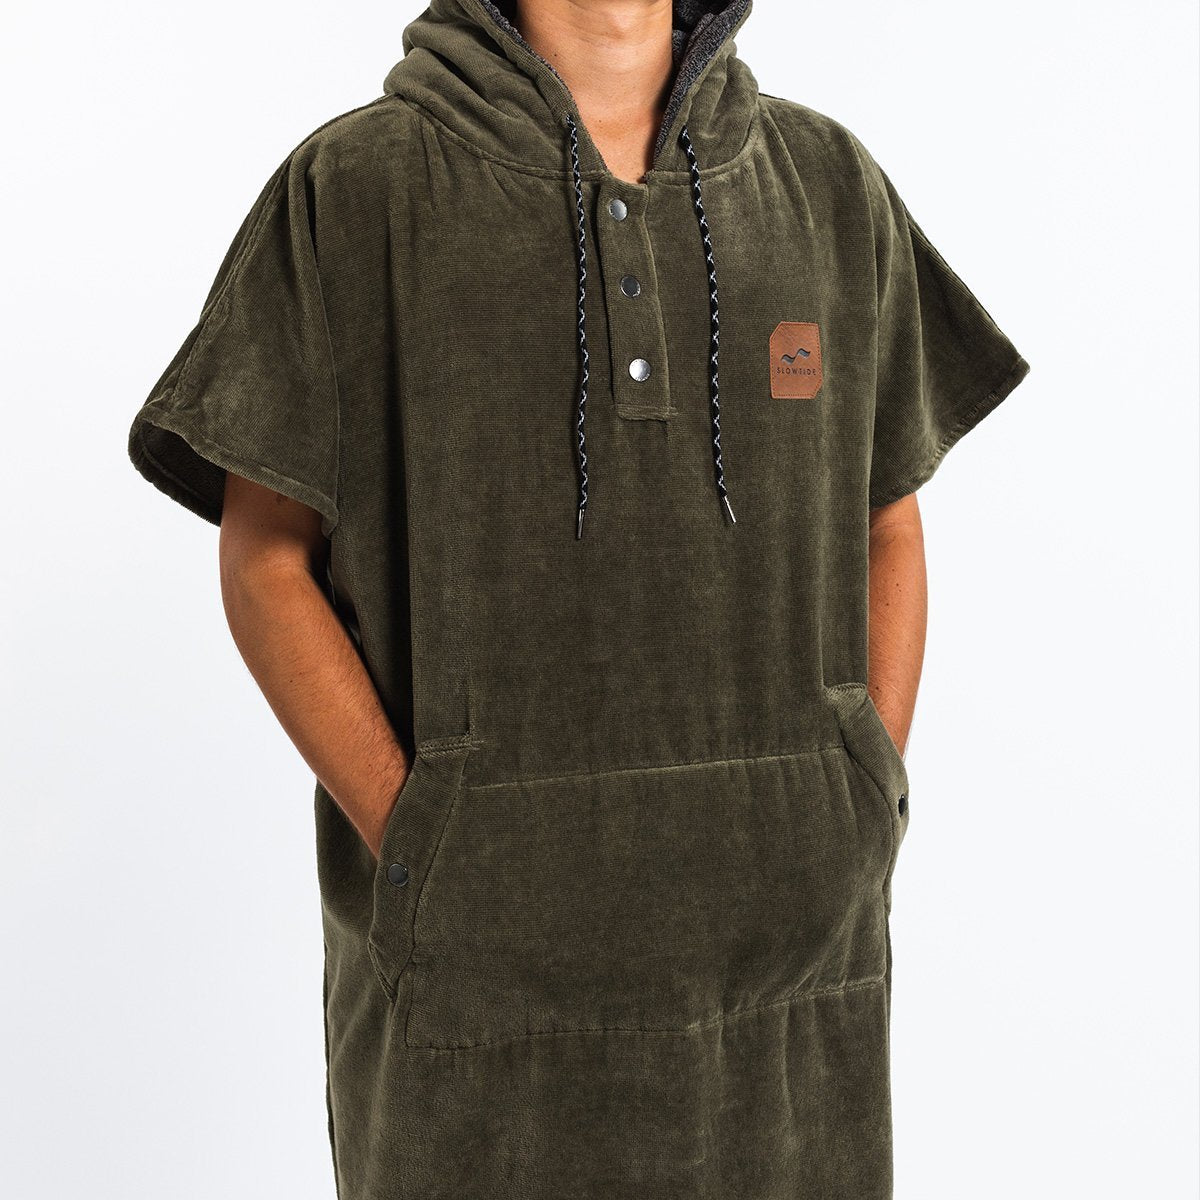 The Digs Changing Poncho - Green - Large